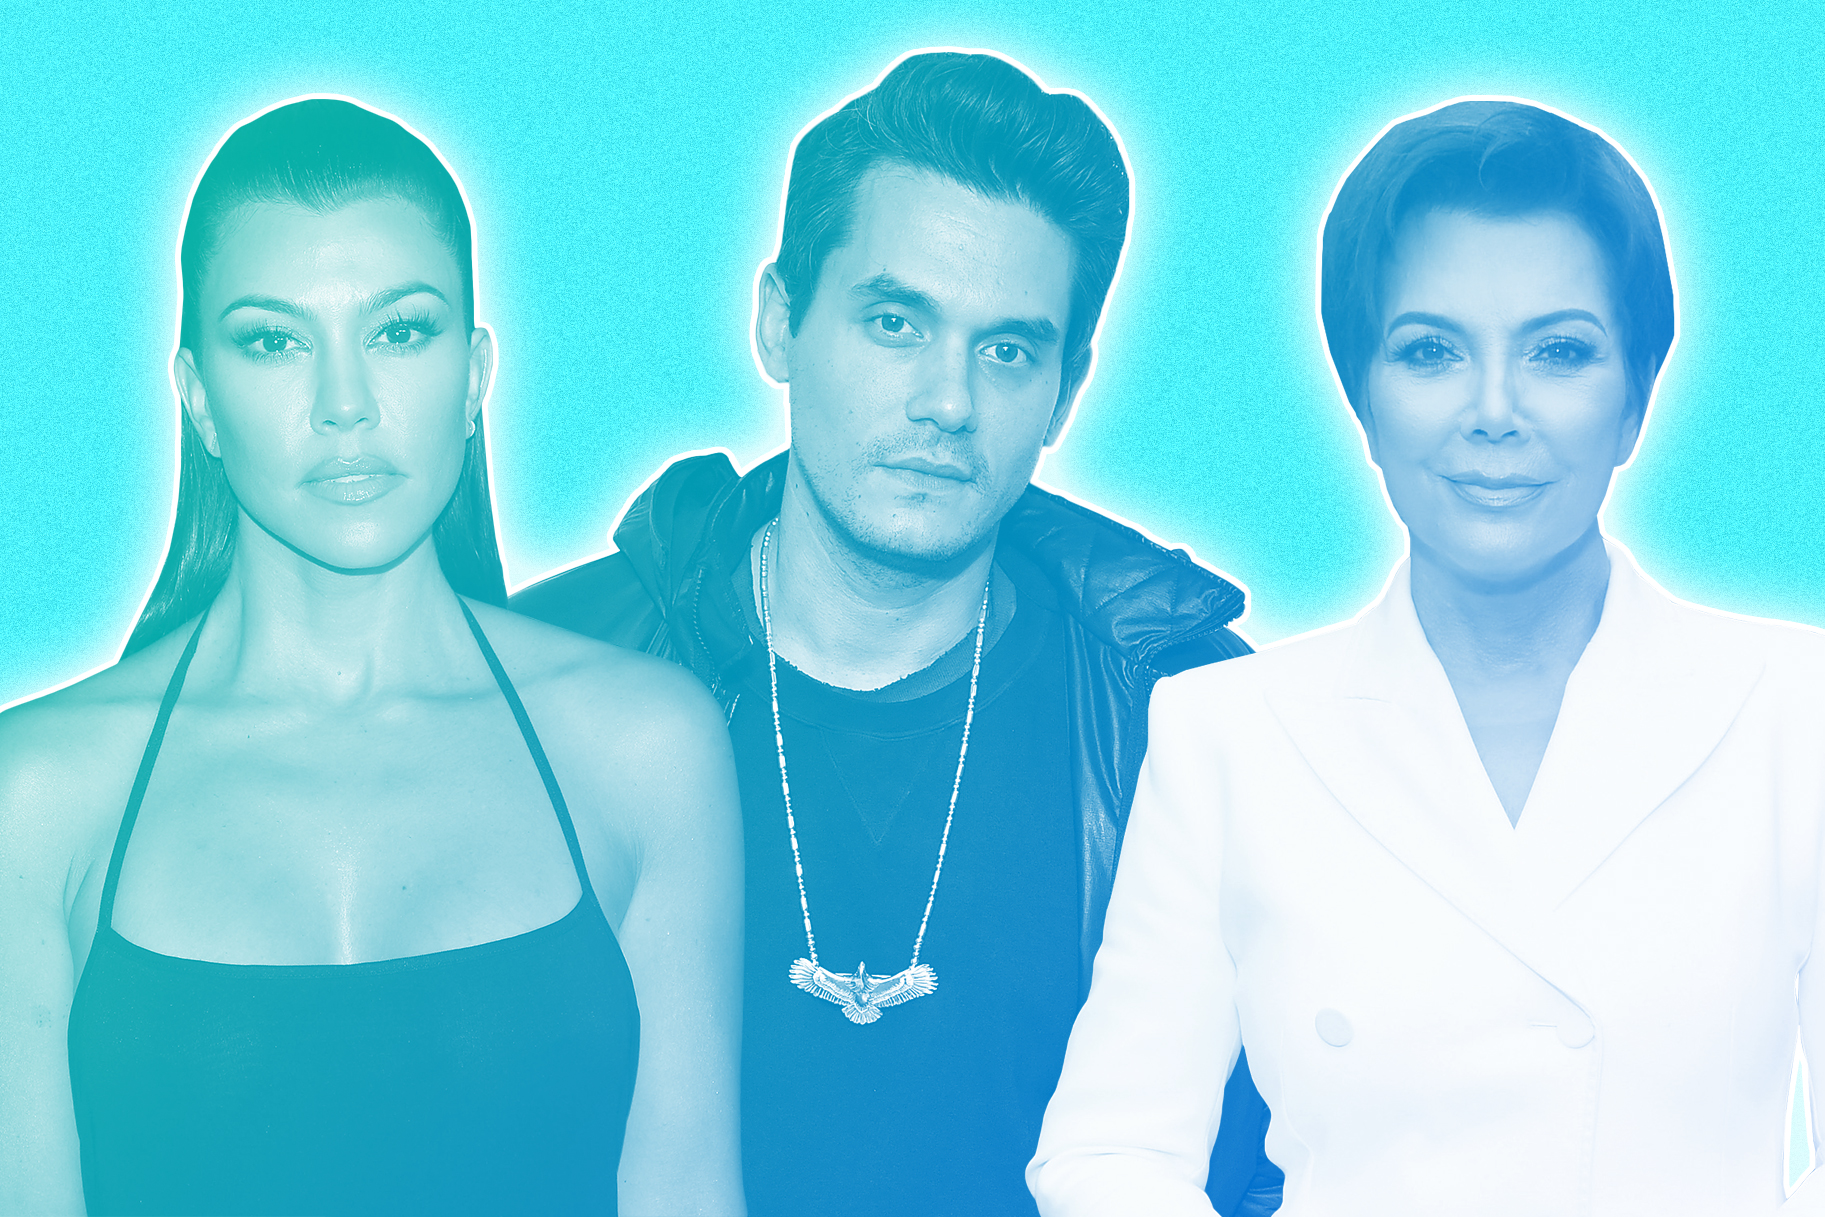 Kourtney Kardashian, John Mayer, Kris Jenner